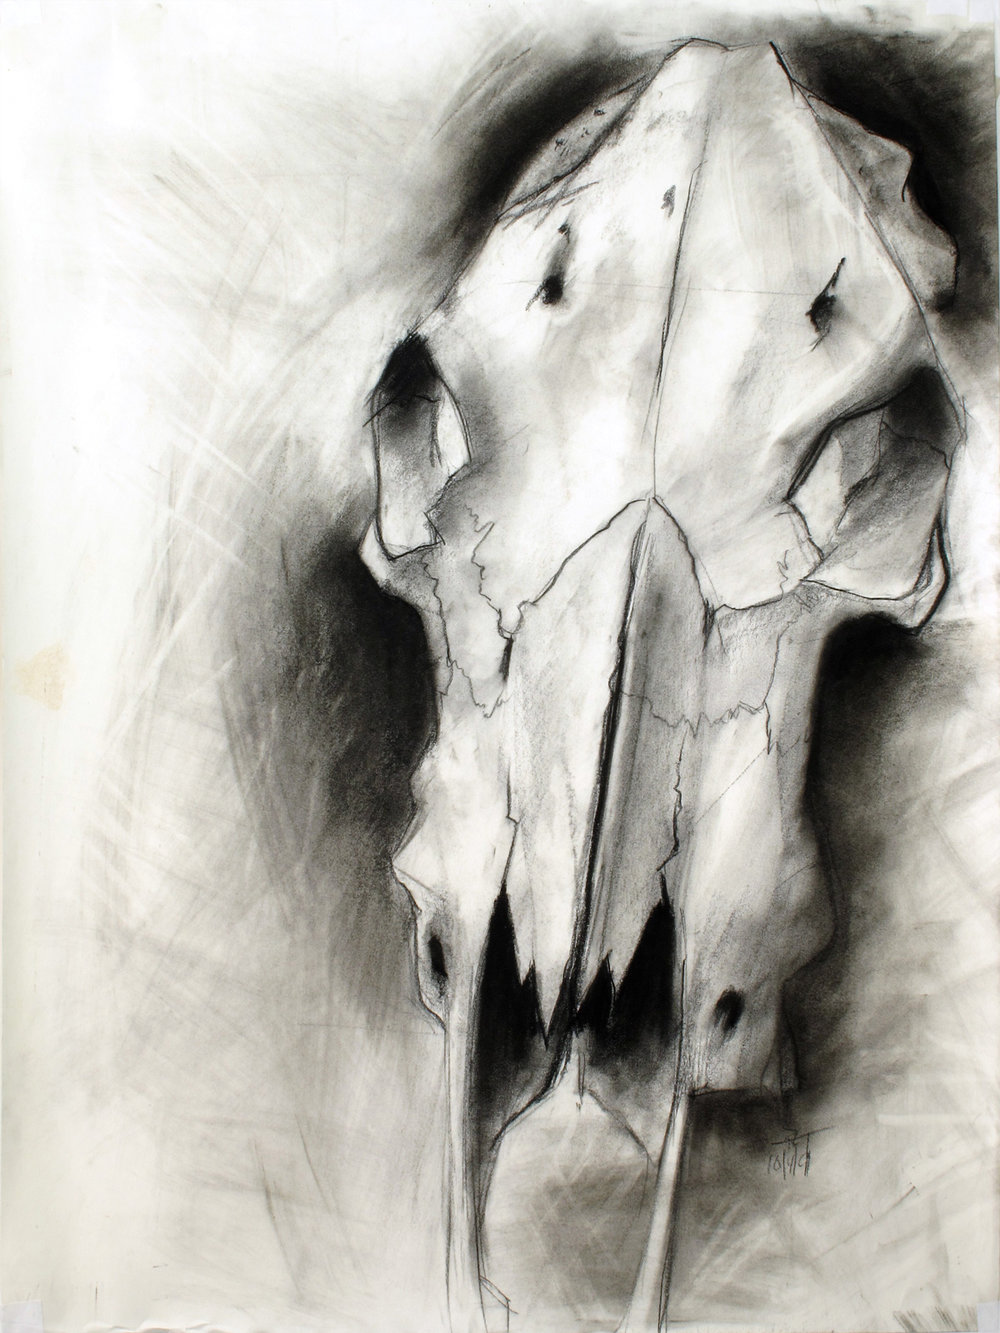 "18 x 24"" charcoal on paper 16 year-old me in my Core Drawing class. We were being introduced to different forms of drawing and encouraged to use different techniques constantly. This one included smudging charcoal and lifting out with a kneaded eraser. I even dated it, 10/4/91."